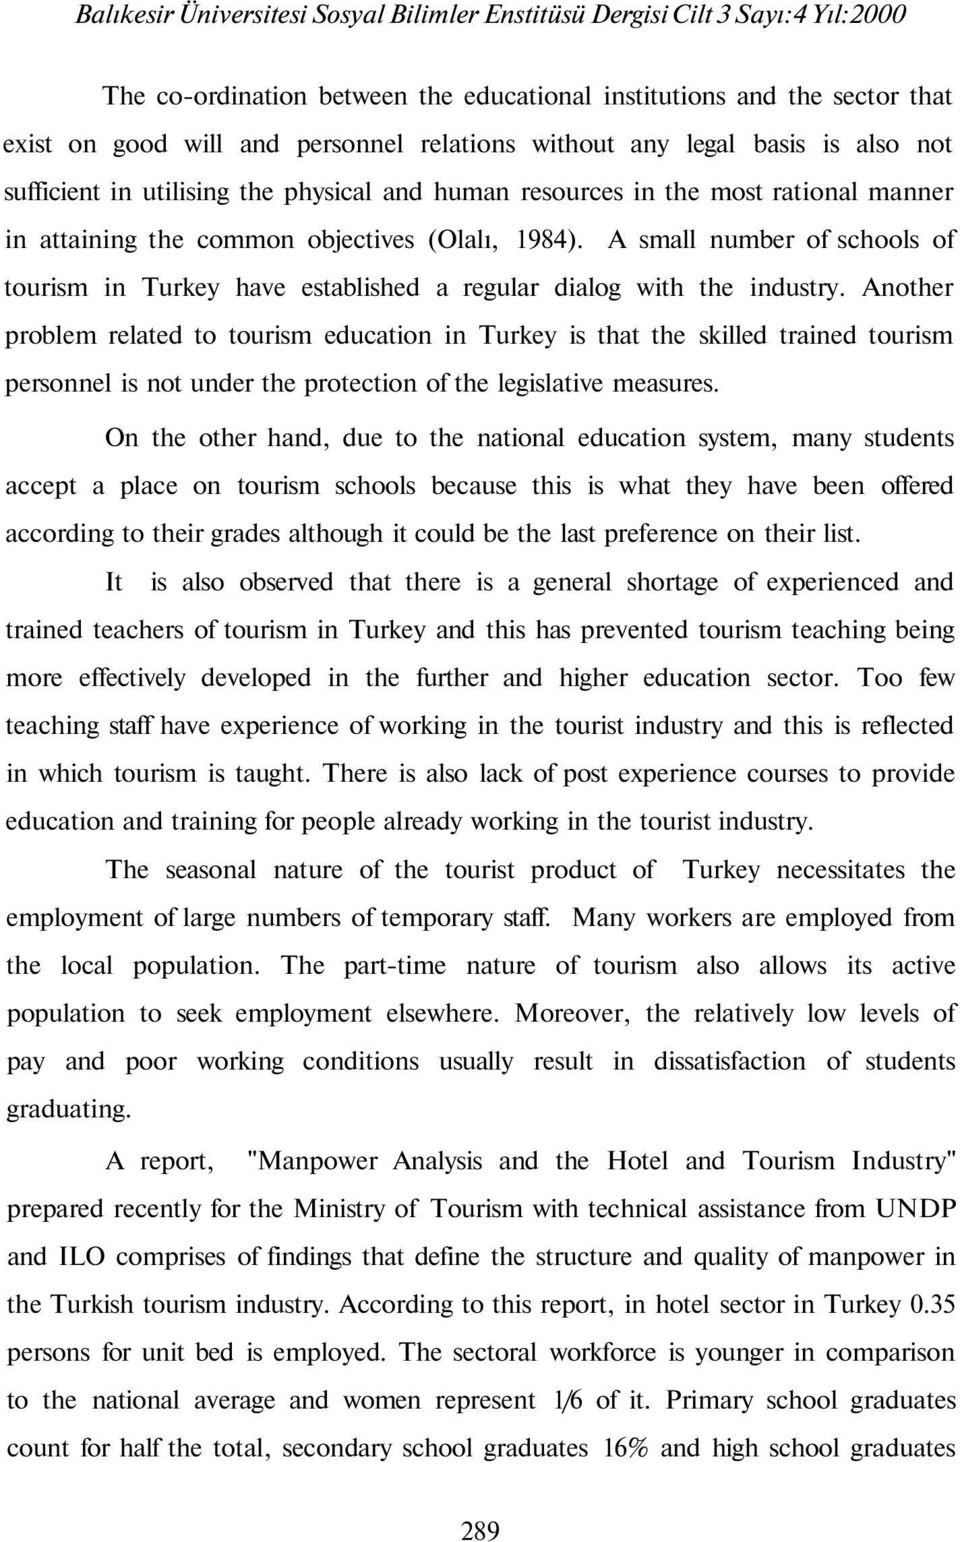 Another problem related to tourism education in Turkey is that the skilled trained tourism personnel is not under the protection of the legislative measures.